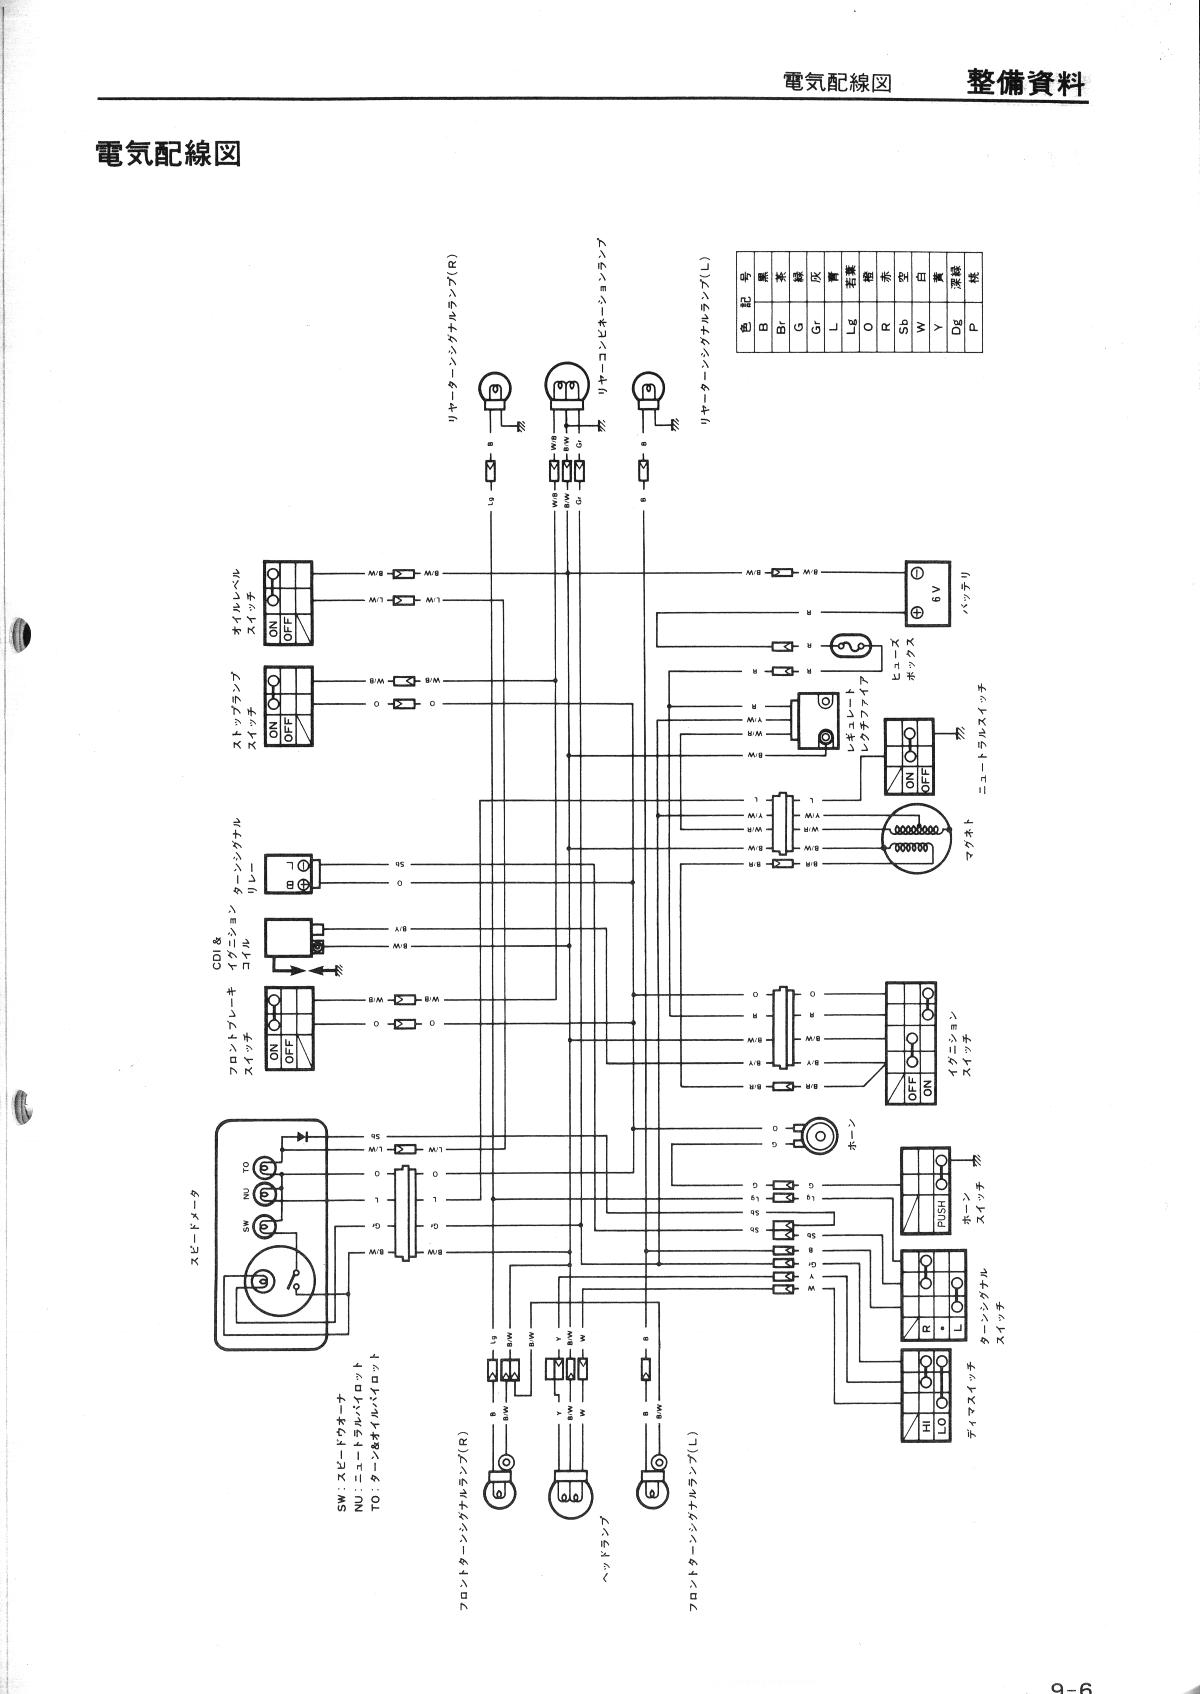 hight resolution of epo wiring diagram 18 wiring diagram images wiring dpdt relay wiring diagram epo shunt trip breaker